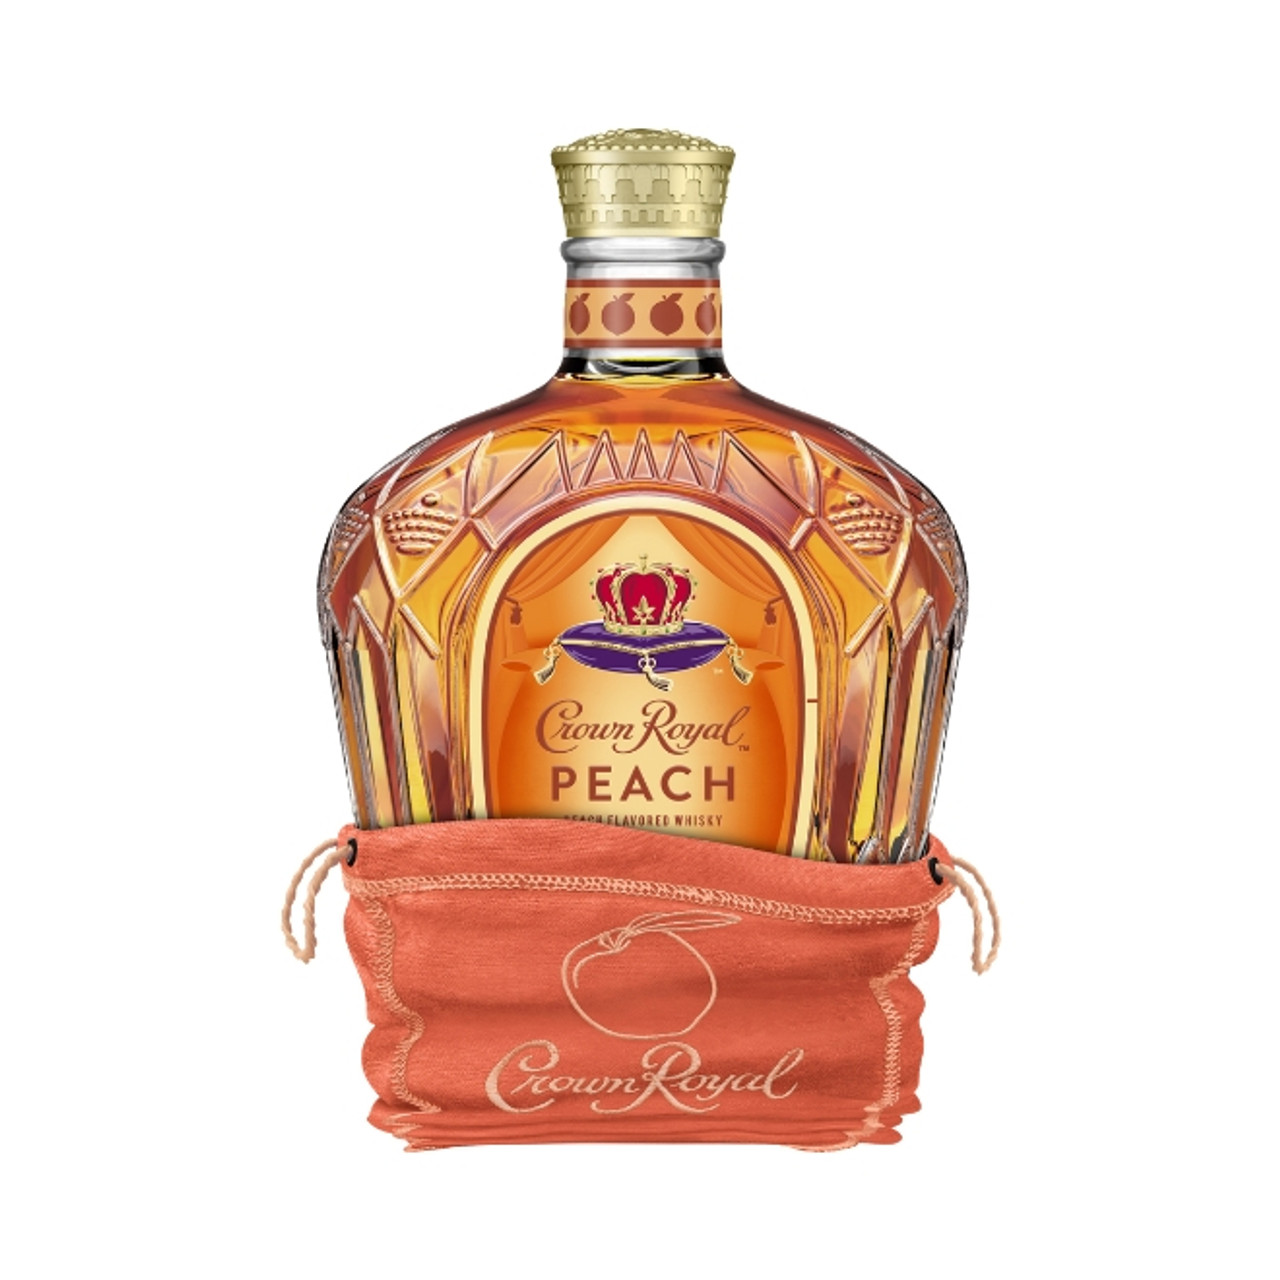 Crown Royal Peach Flavored Whisky is a new Limited Edition from Crown Royal, bringing some juicy sweetness to your summer season.